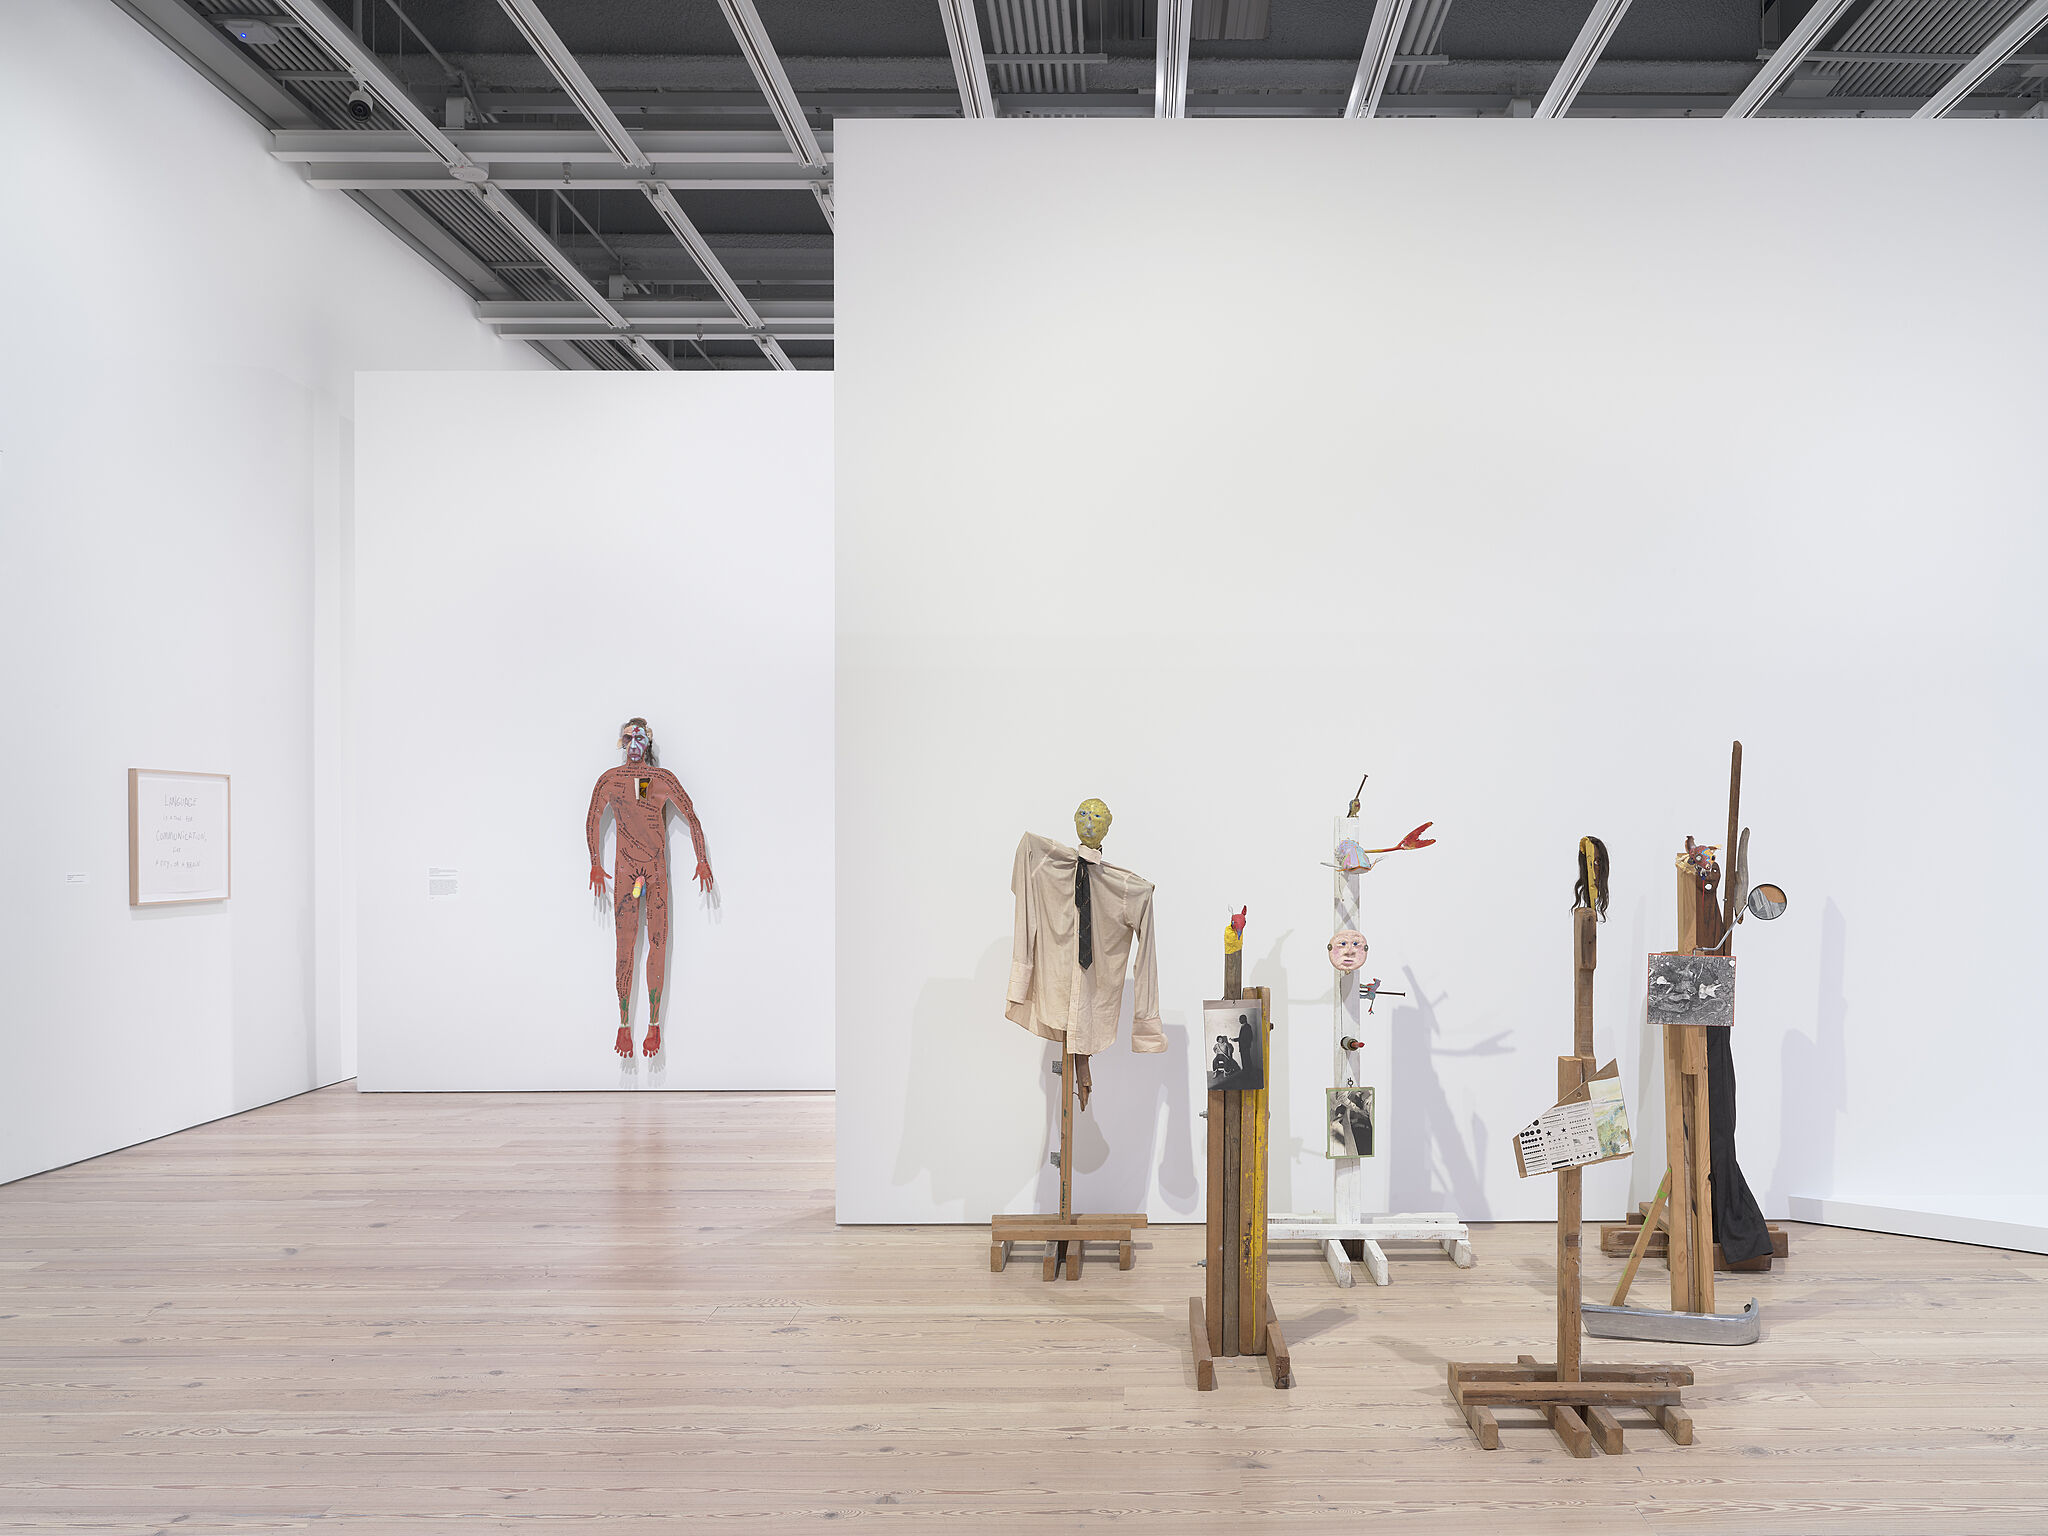 Installation view of Jimmie Durham: At the Center of the World.